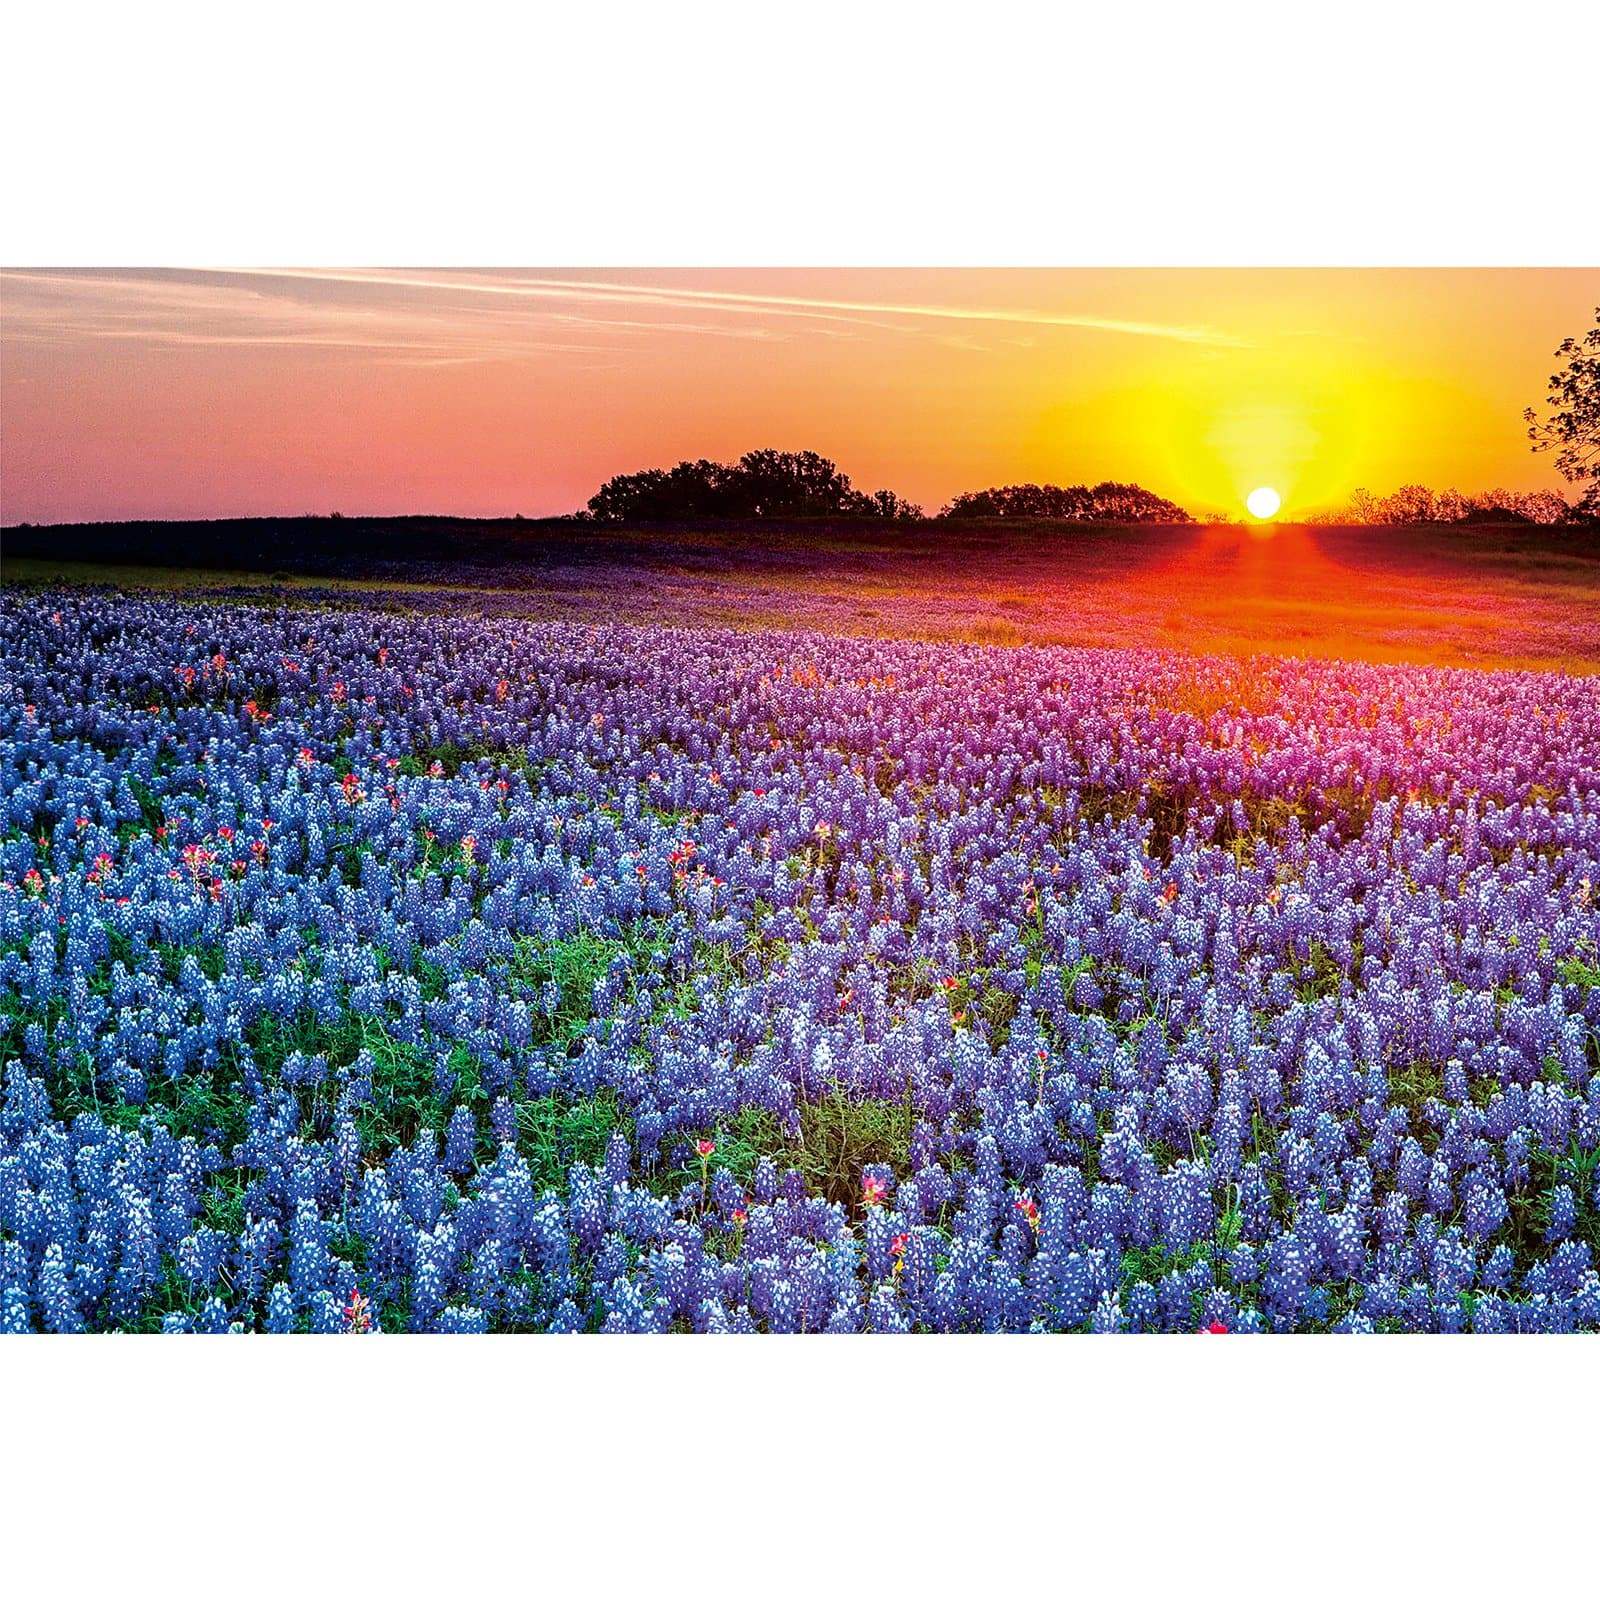 Ingooood Wooden Jigsaw Puzzle 1000 Pieces for Adult-Lavender in the sunset - Ingooood jigsaw puzzle 1000 piece